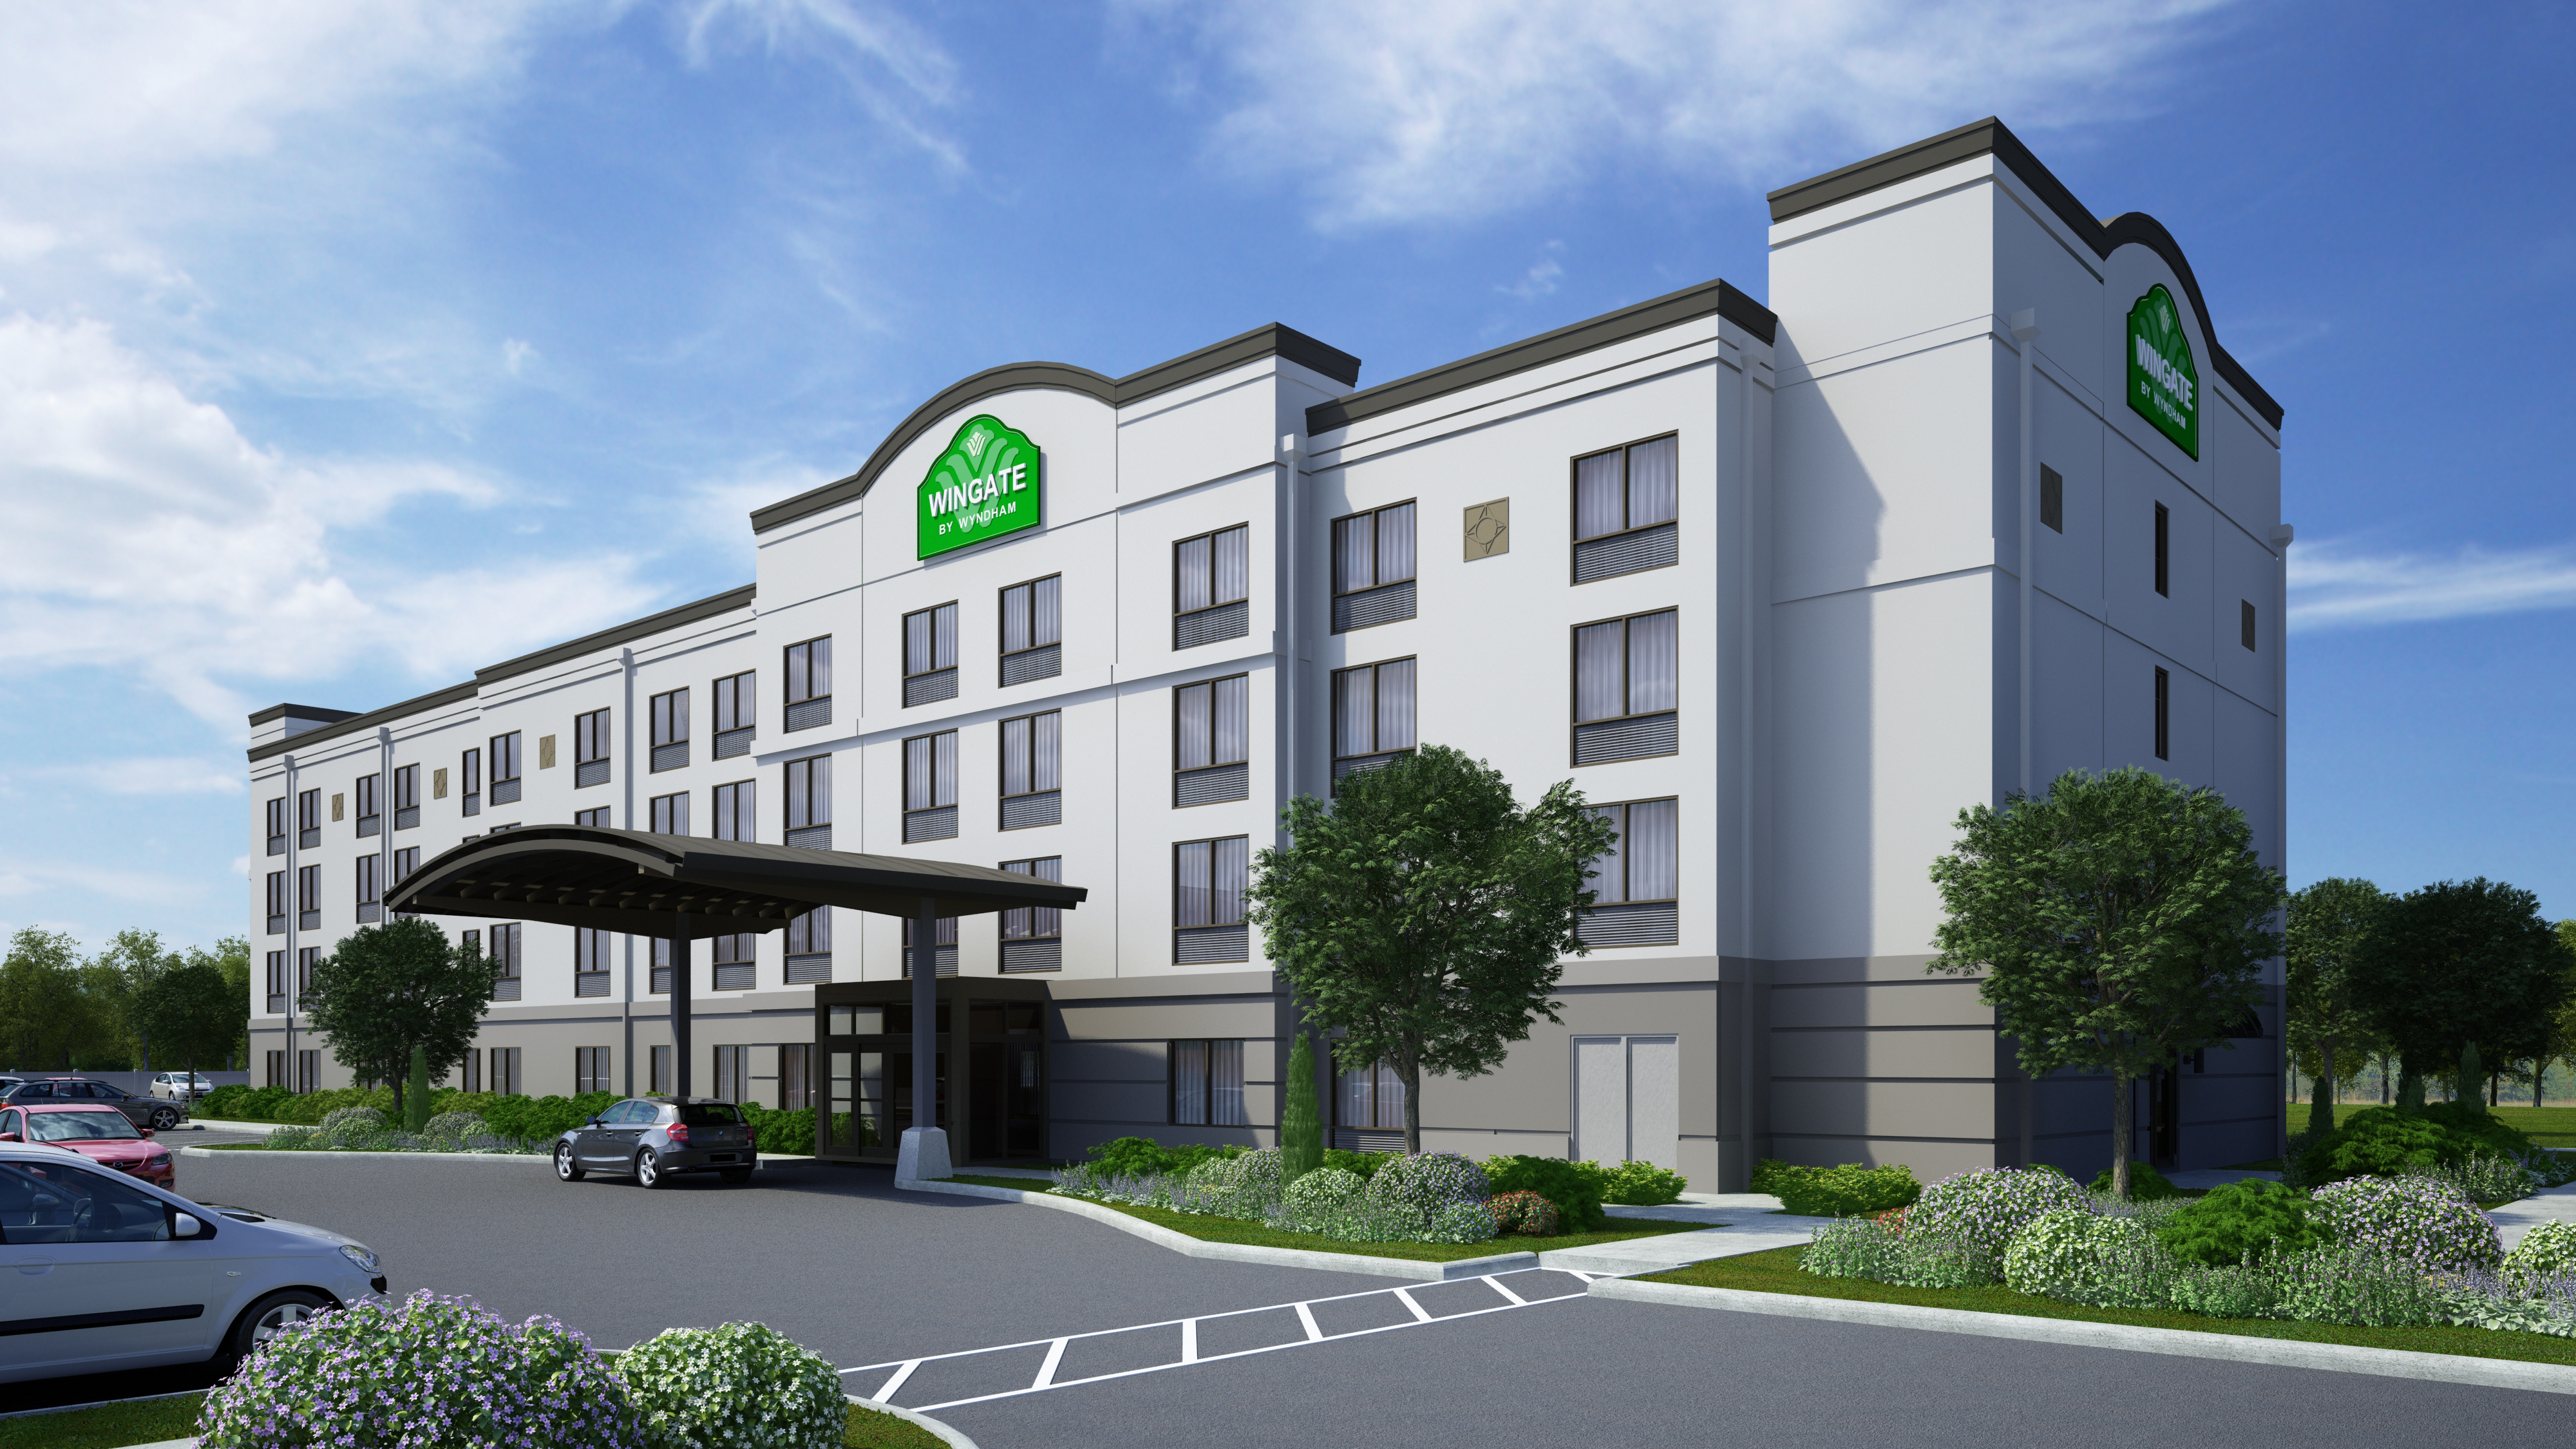 Microtel inn suites by wyndham and wingate by wyndham for The wyndham